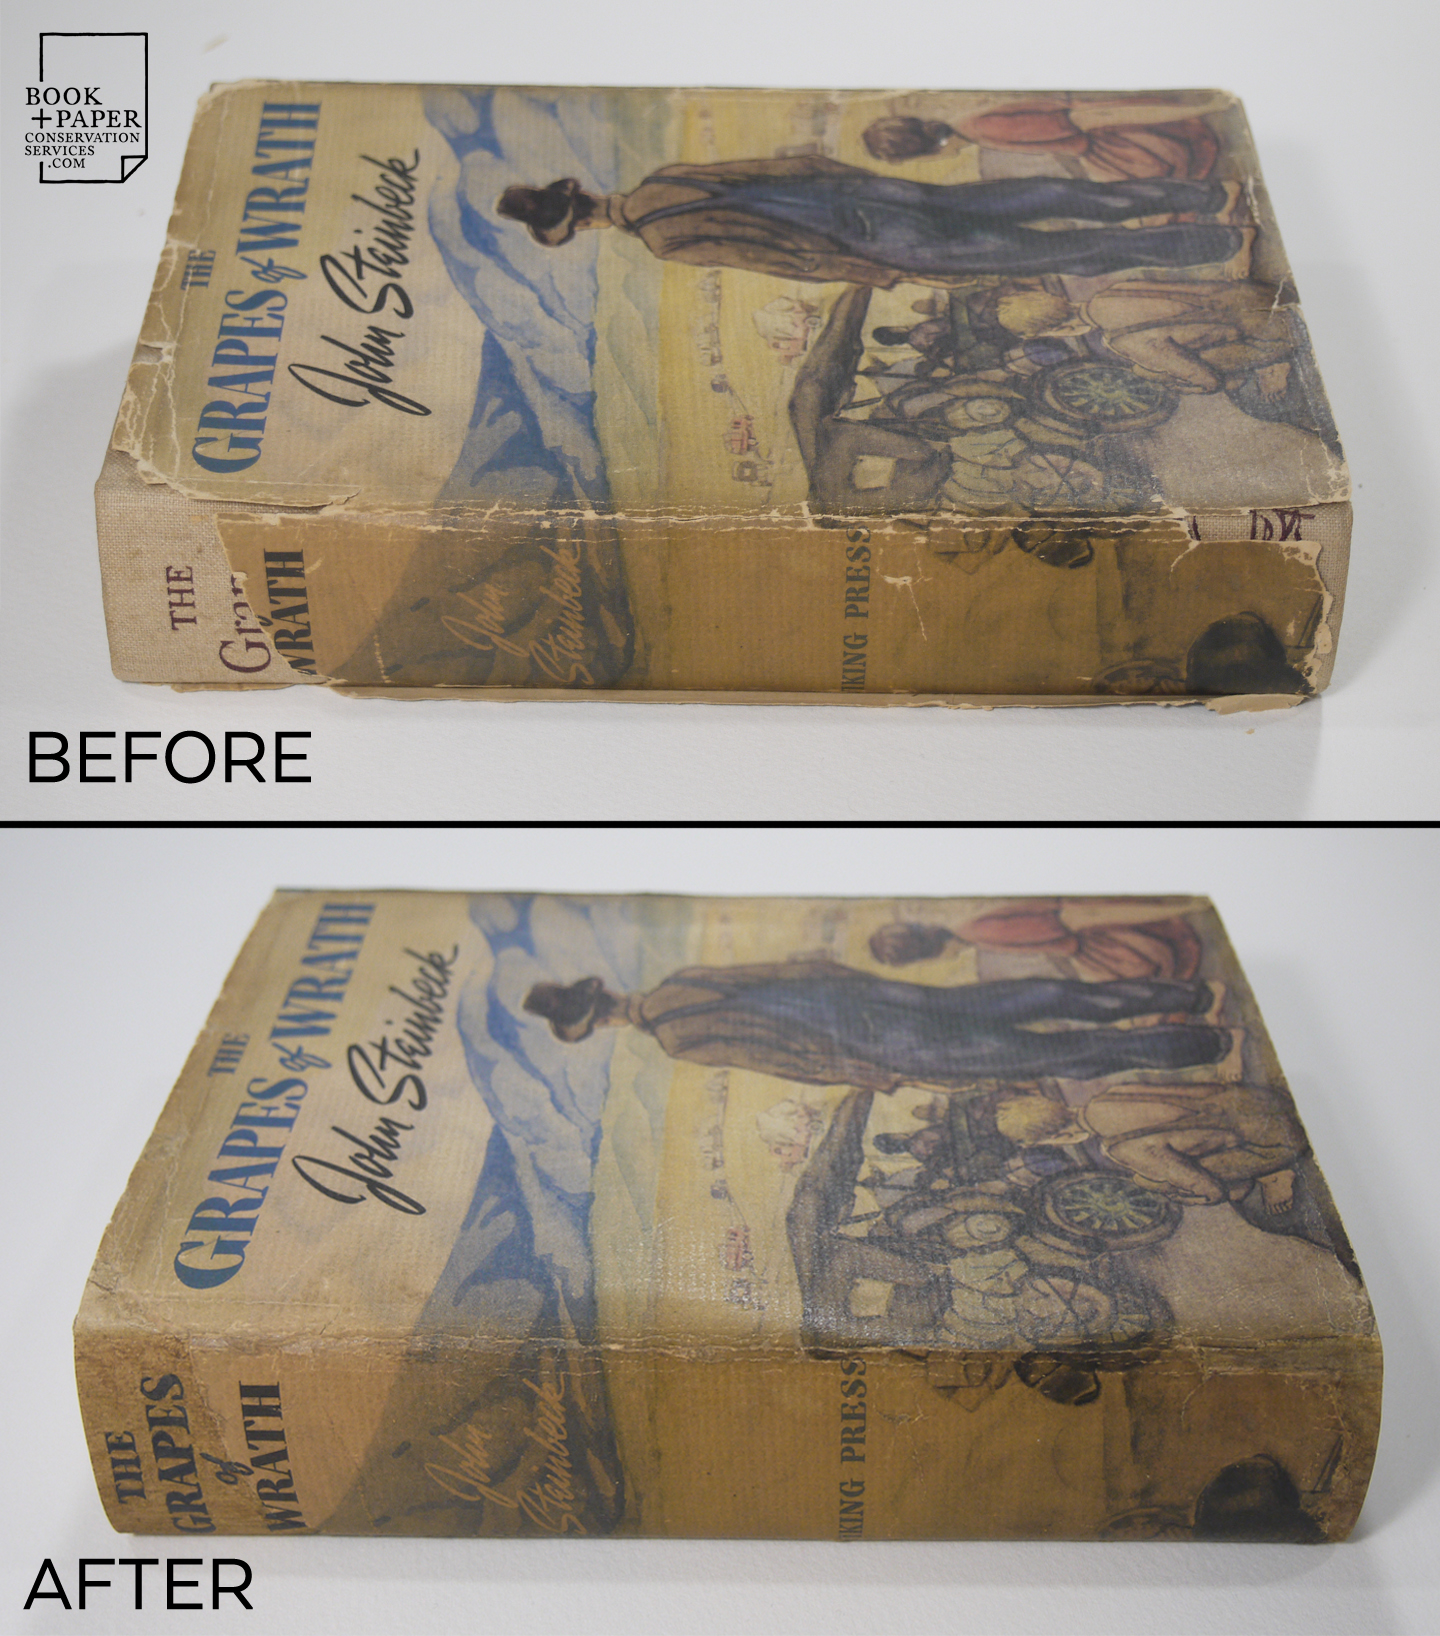 Before and after restoration, showing the spine and front cover of 1st edition of The Grapes of Wrath by John Steinbeck.